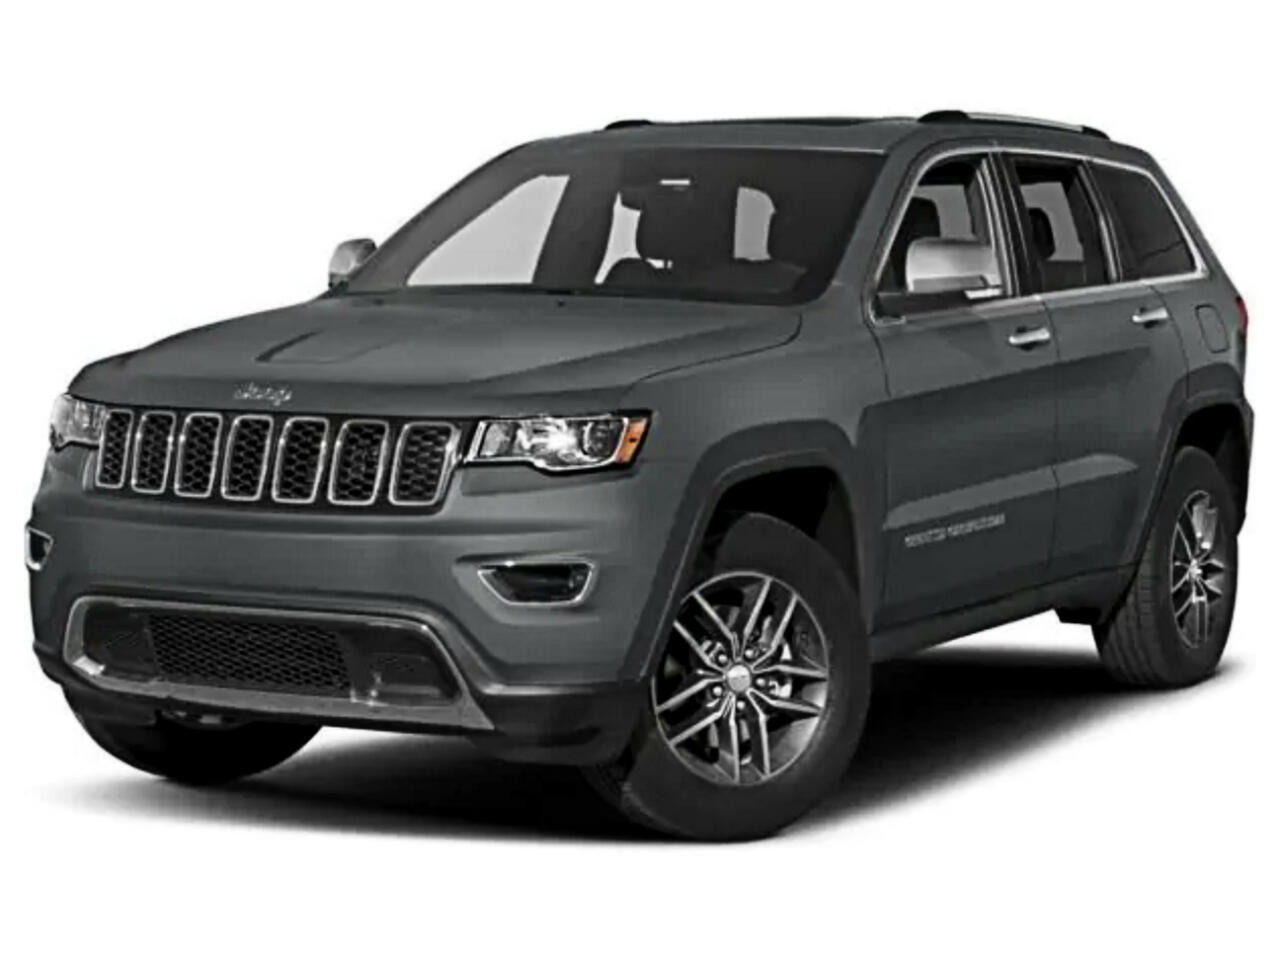 2018 Jeep Grand Cherokee 4dr Limited 4WD